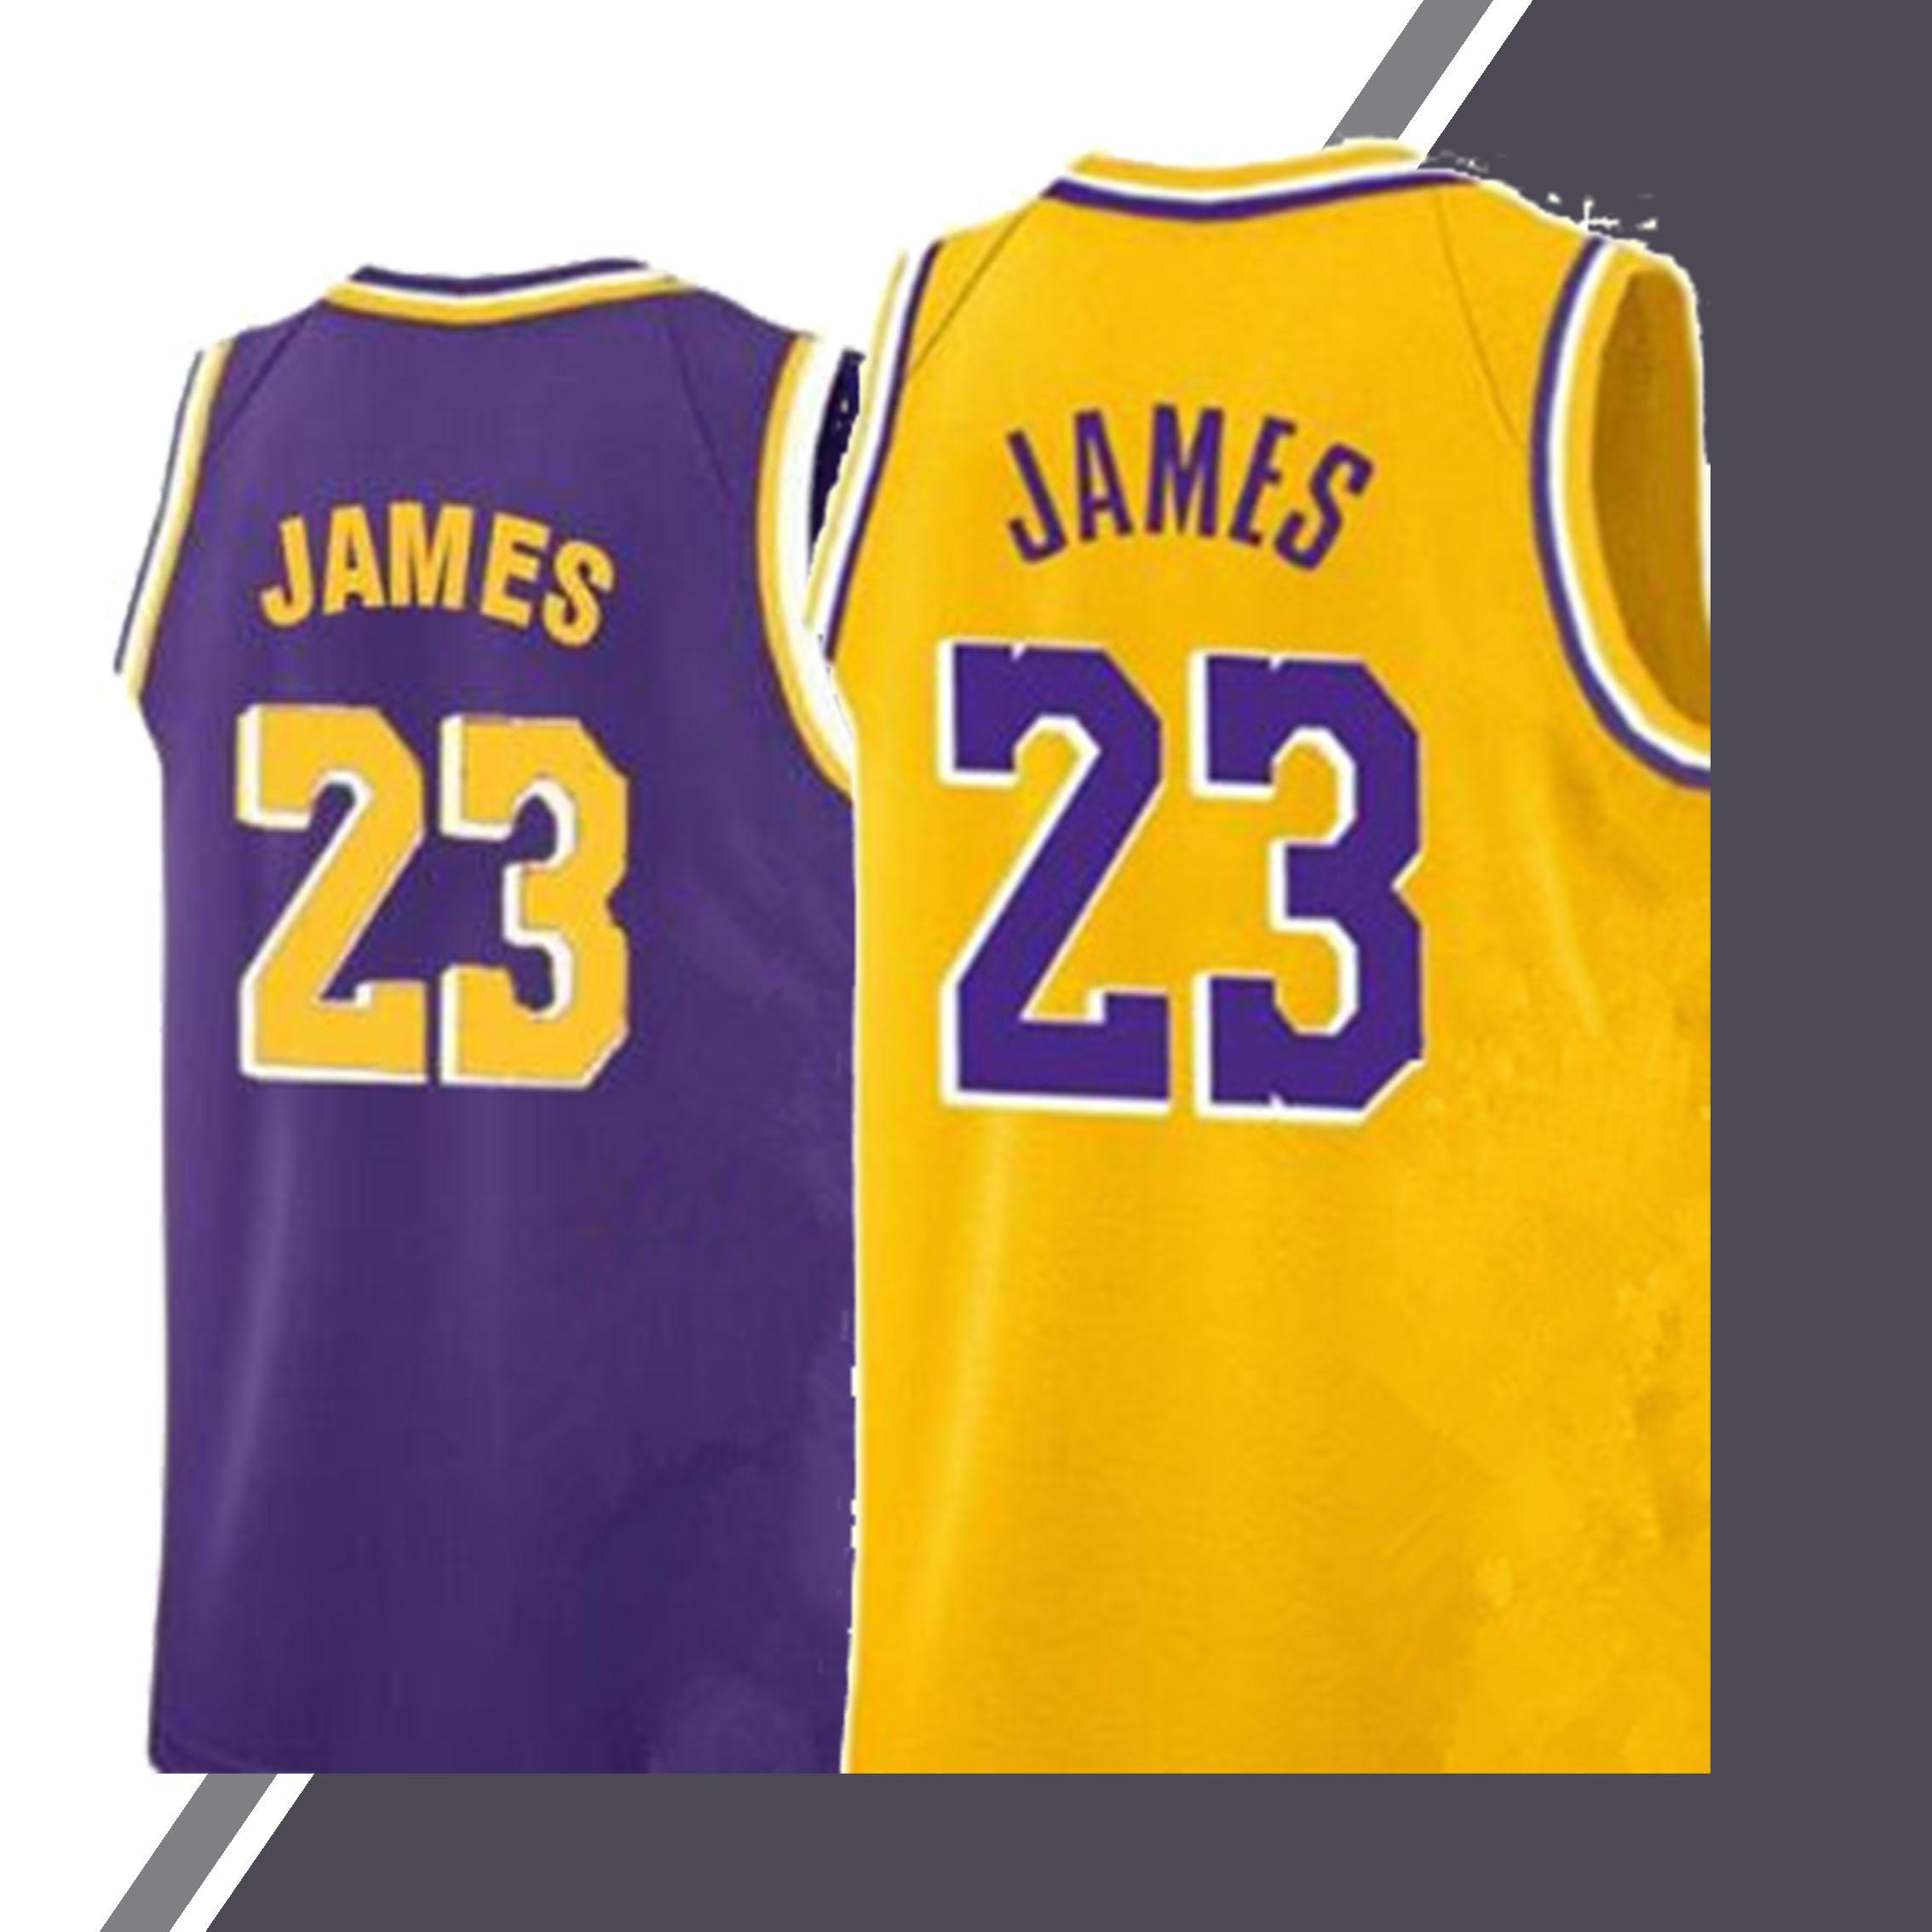 100% authentic 5de3a 22a6f 23 LeBron James Los Angeles jersey Laker 24 Bryant 0 Kuzma 2 Ball Hot sale  2019 menbasketball jerseys